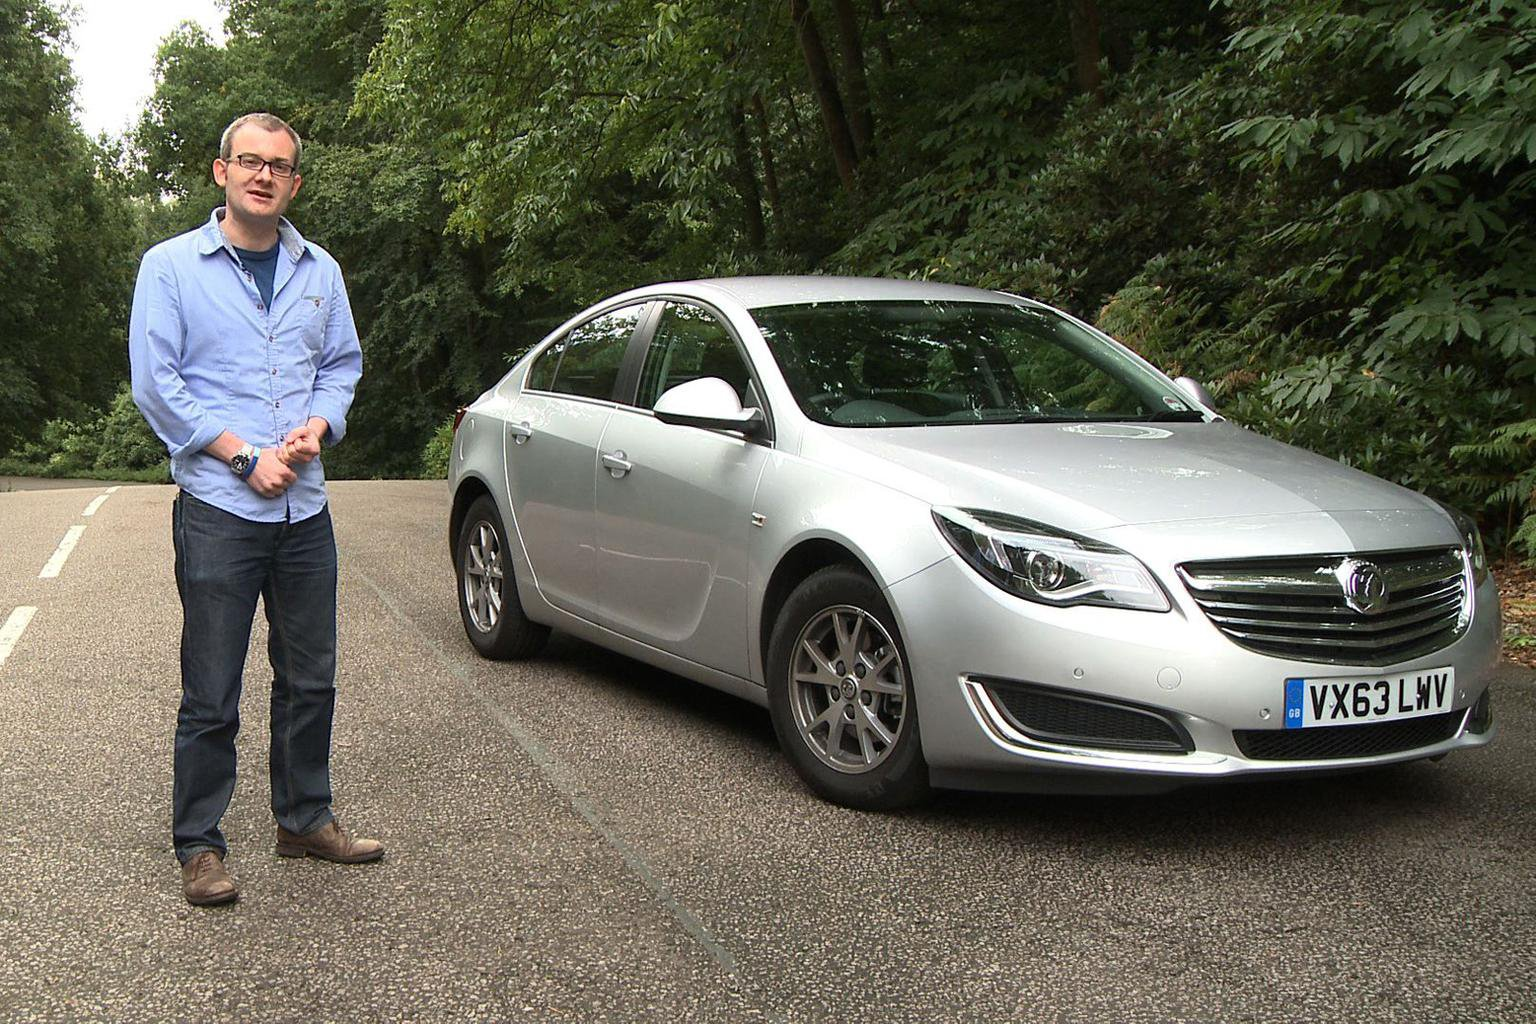 2013 Vauxhall Insignia - video review